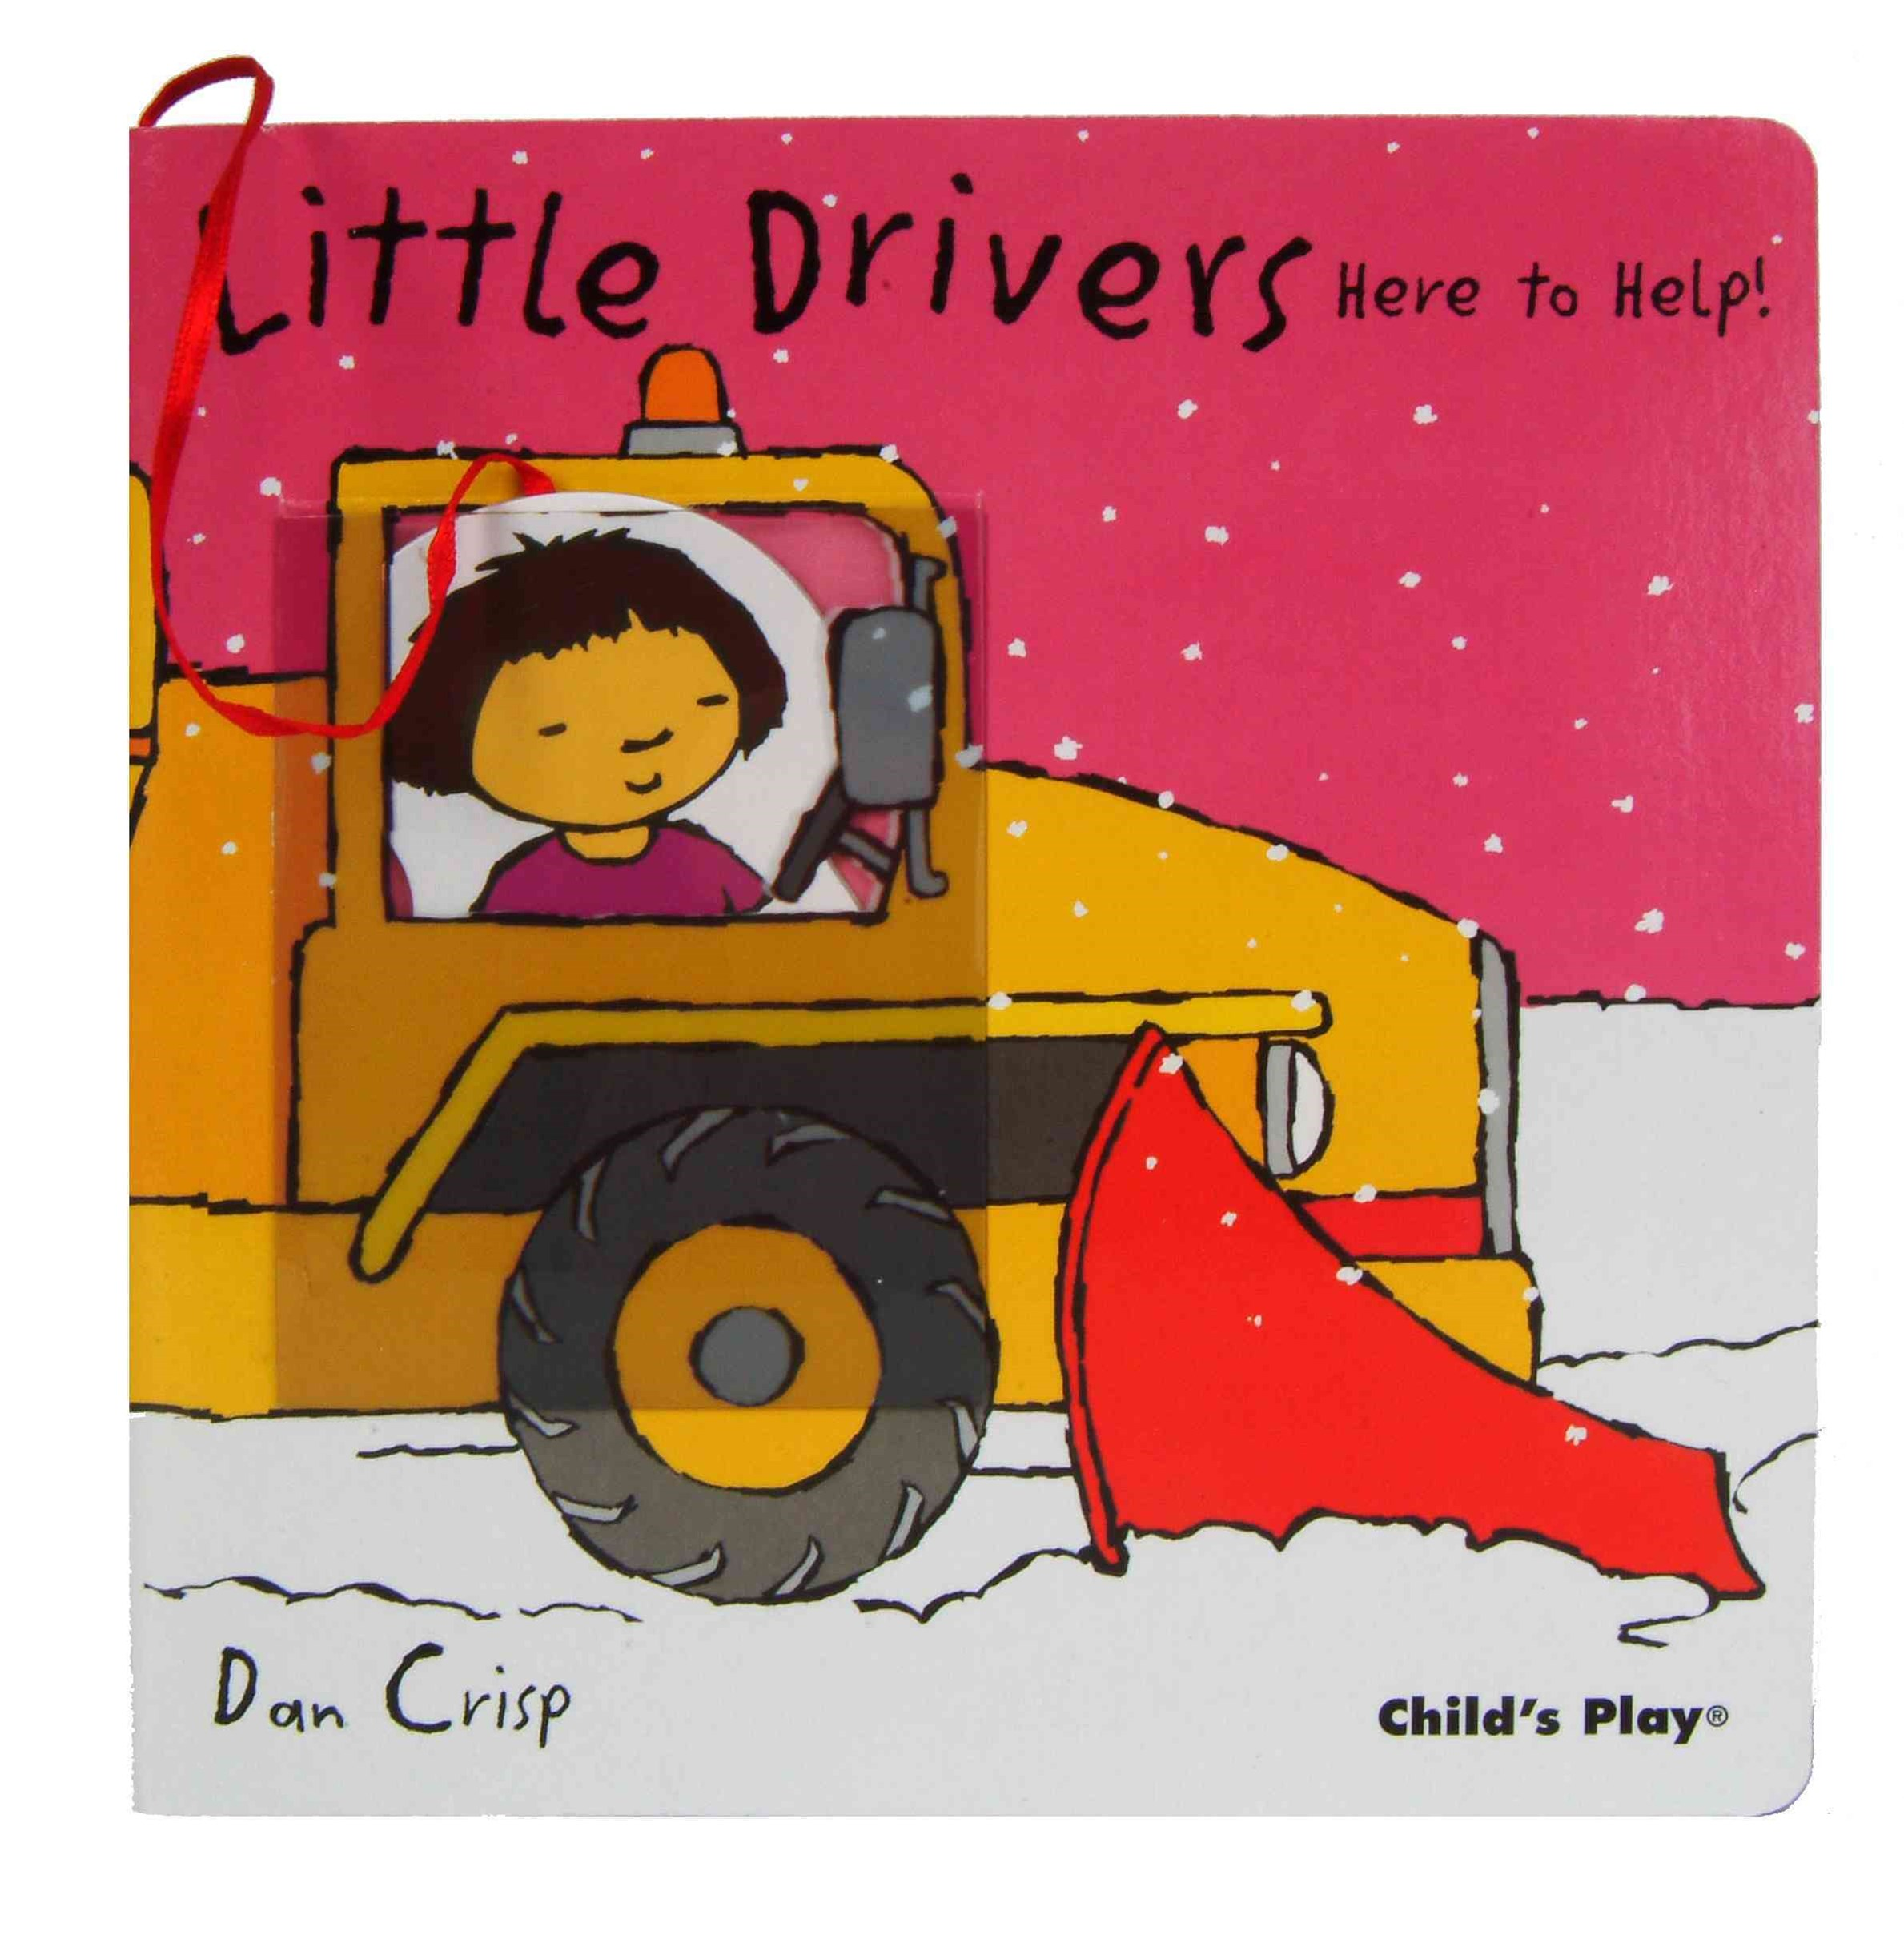 Little Drivers Here to Help!